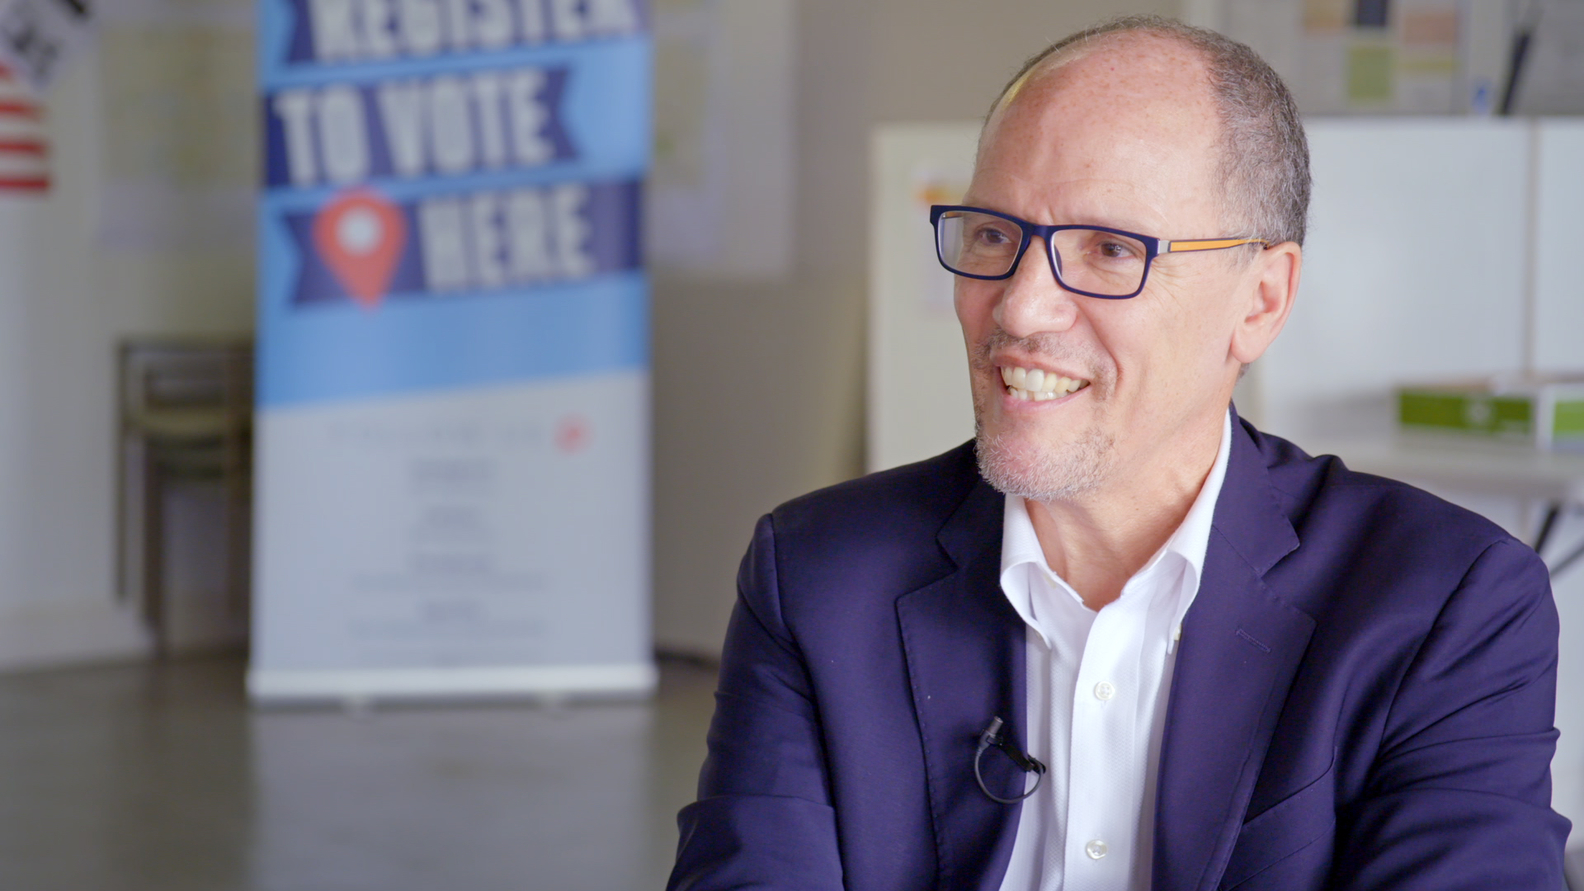 Tom Perez, Chair of the Democratic National Committee